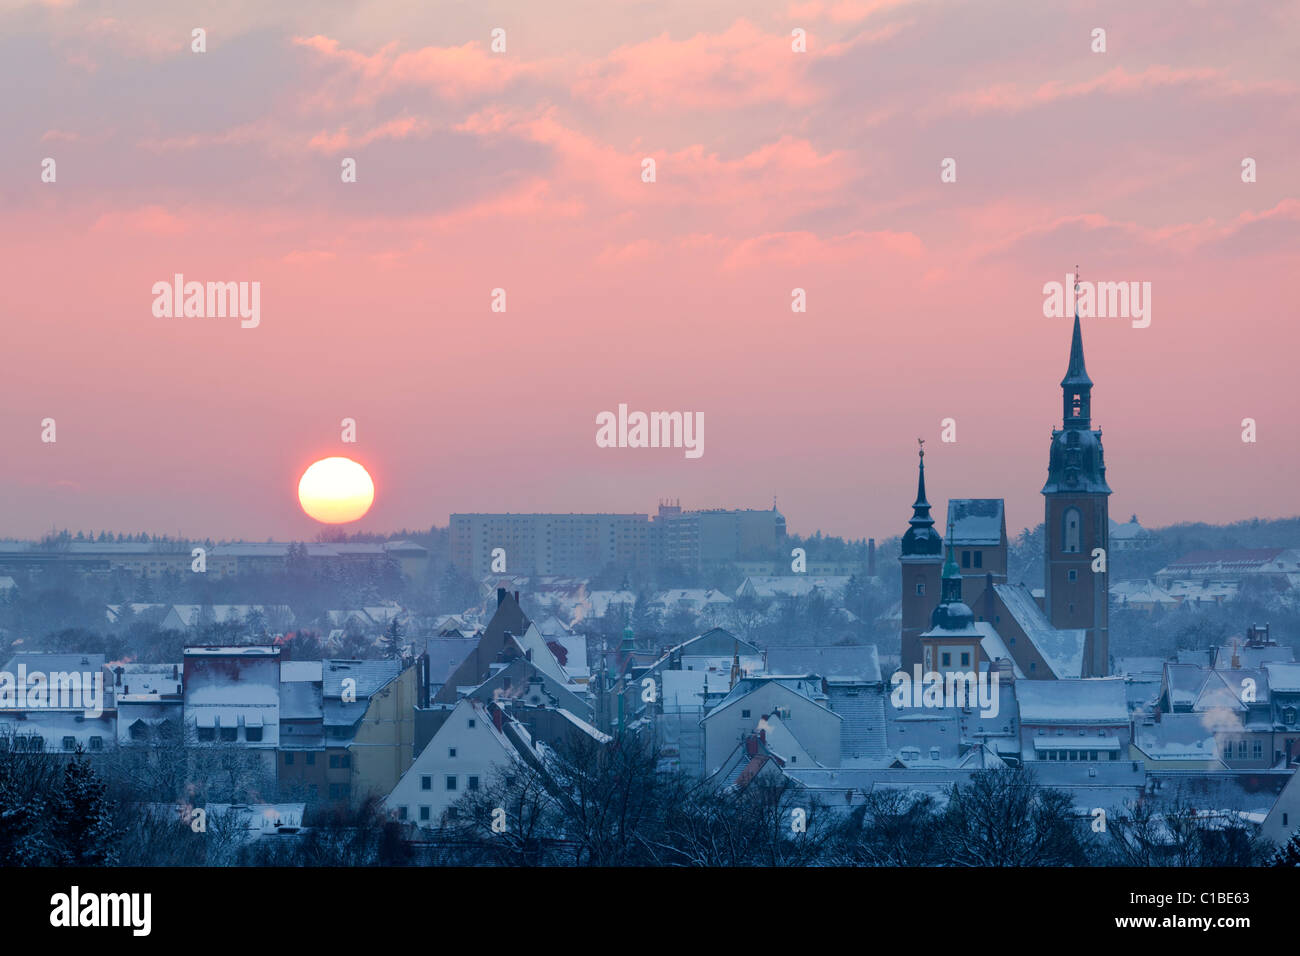 Sunset over Freiberg, Germany. - Stock Image